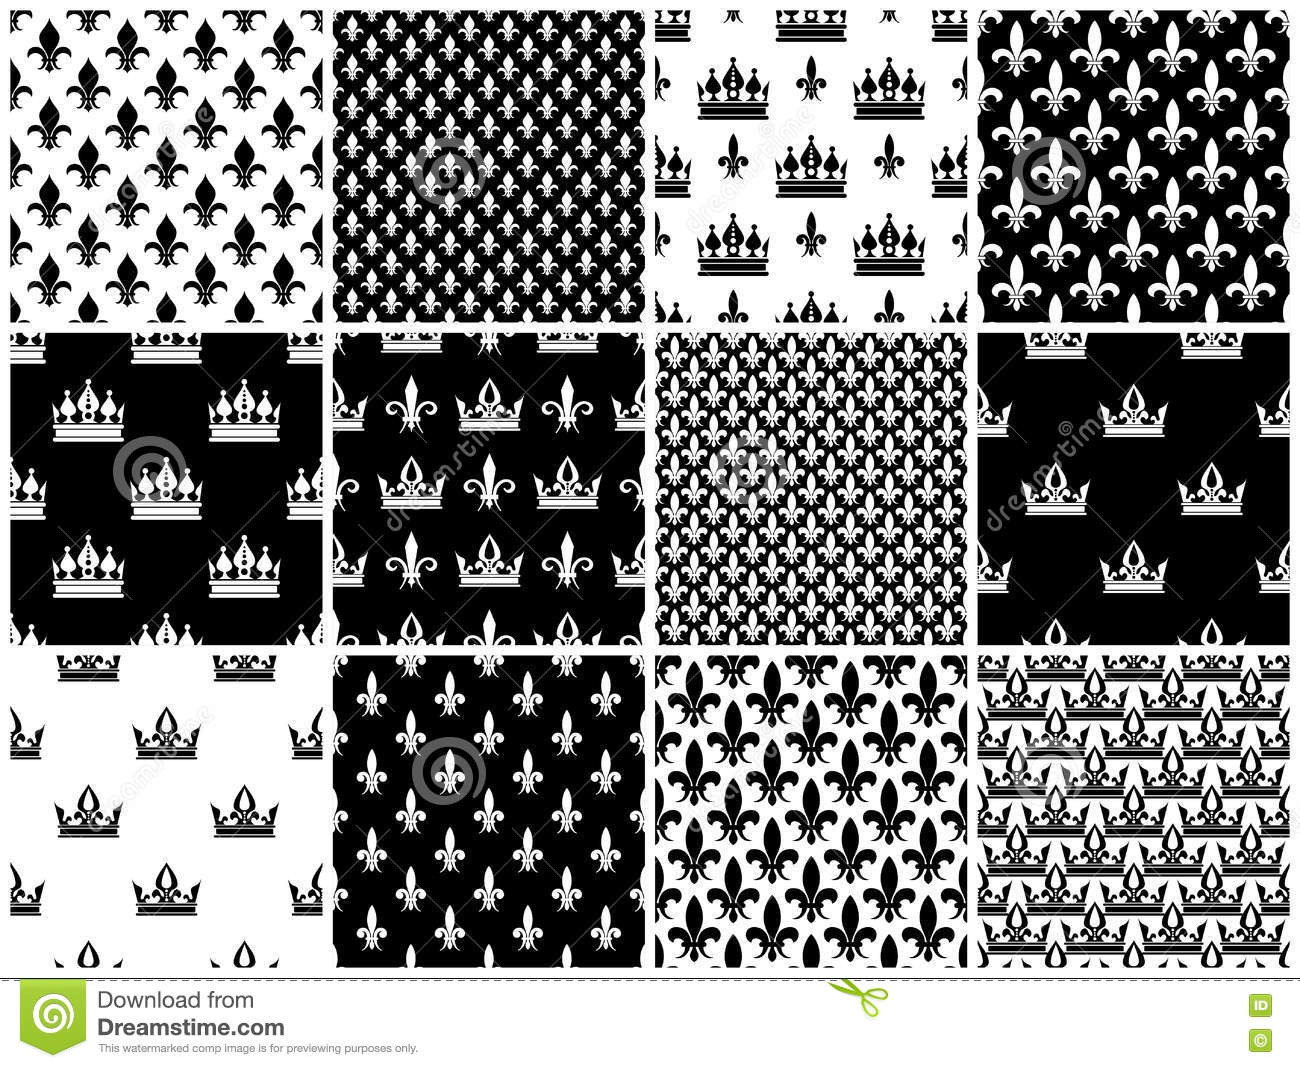 Vector Crowns And Fleur De Lis Seamless Patterns Set In Black Stock Vector Illustration Of Ornate Queen 78769687